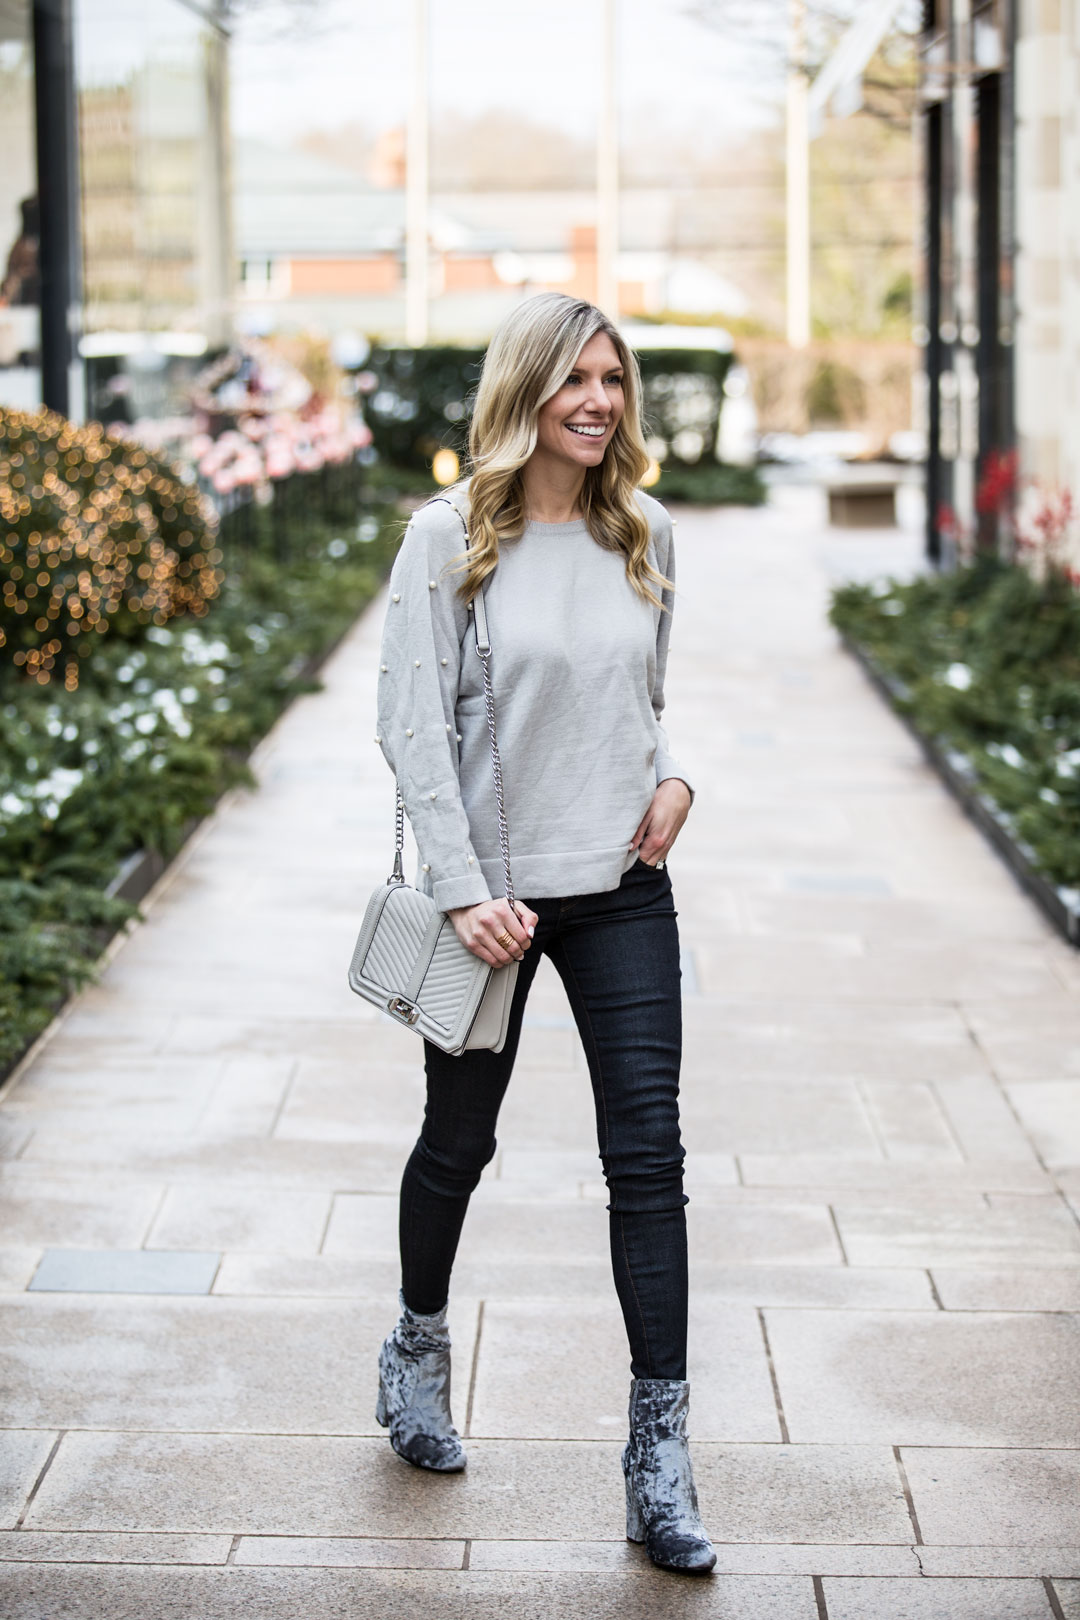 Romwe Pearl Embellished Sweater under $25